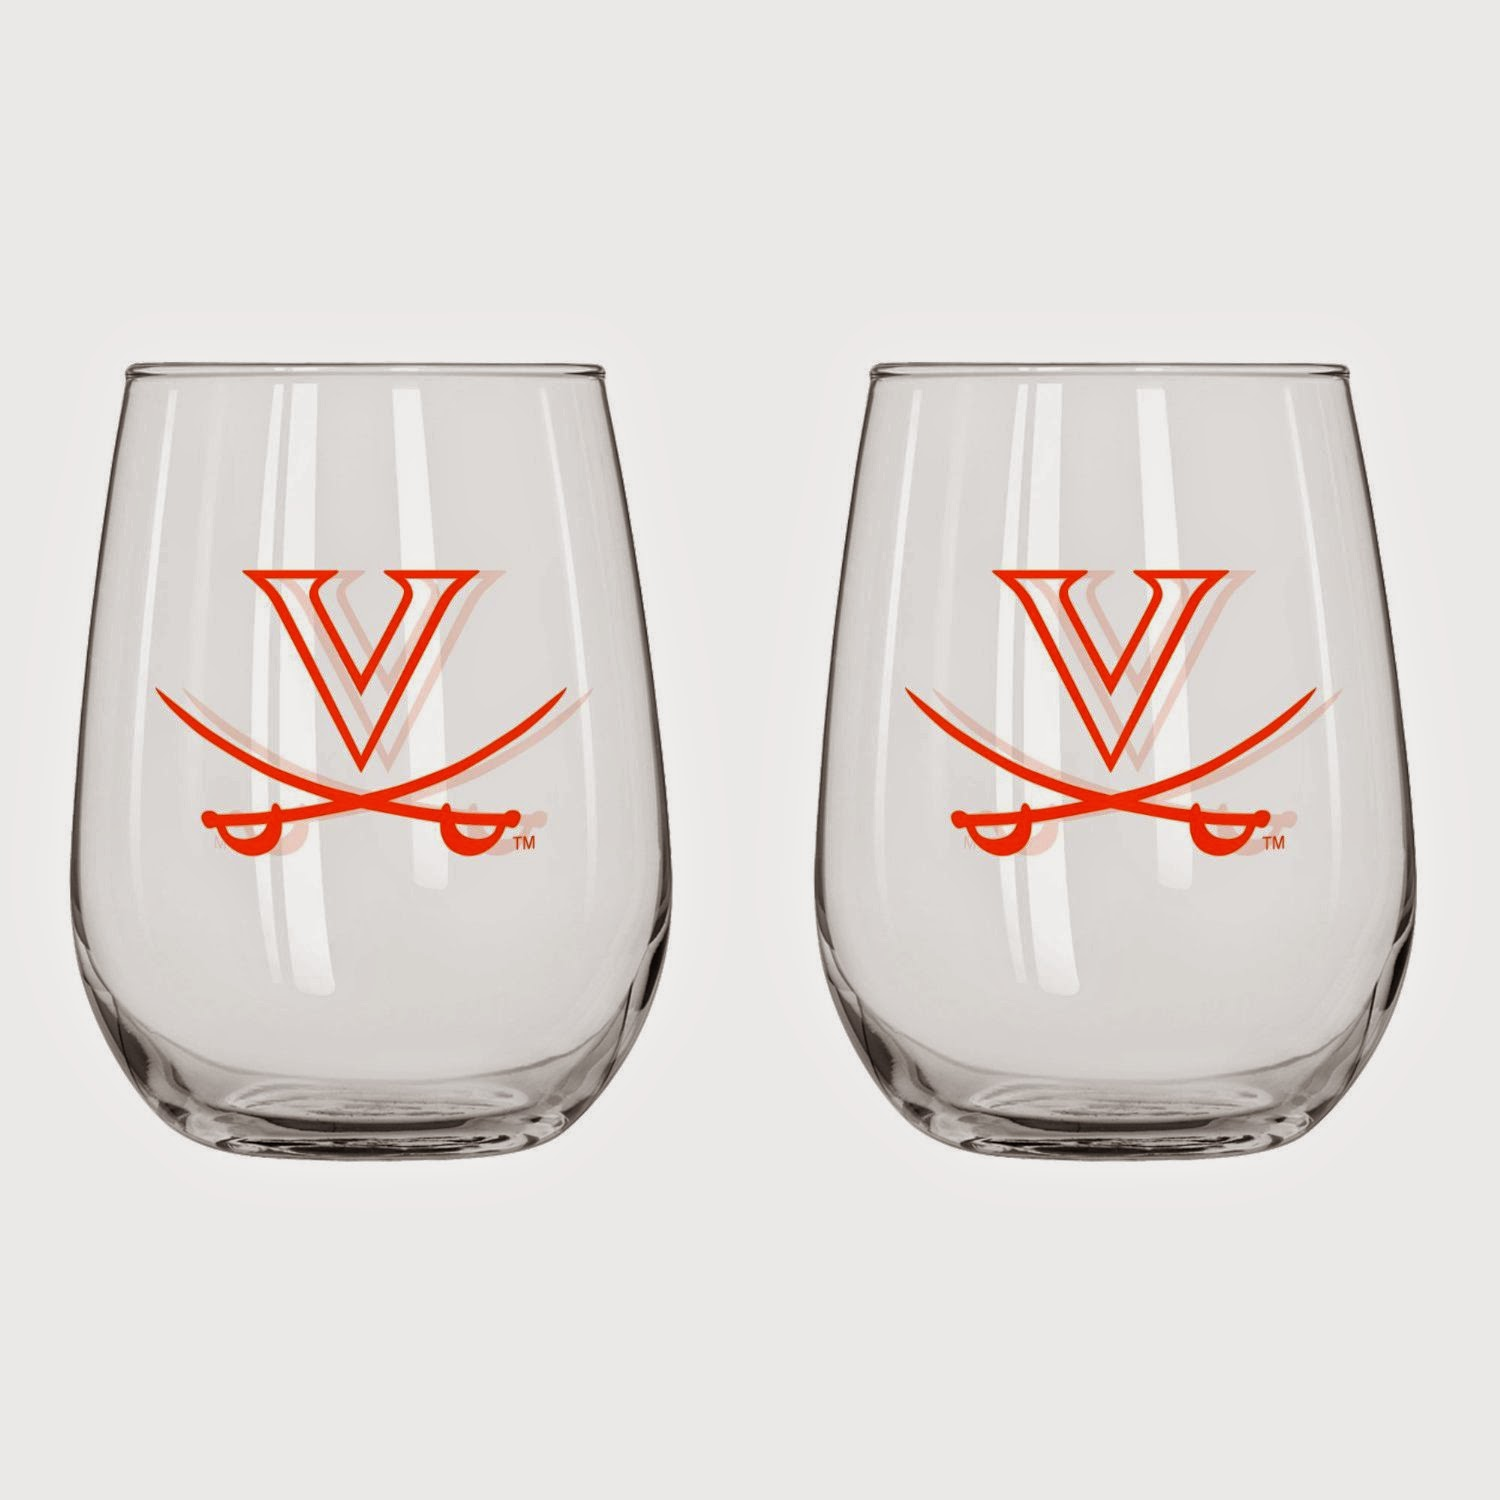 Virginia Cavaliers NCAA Glasses